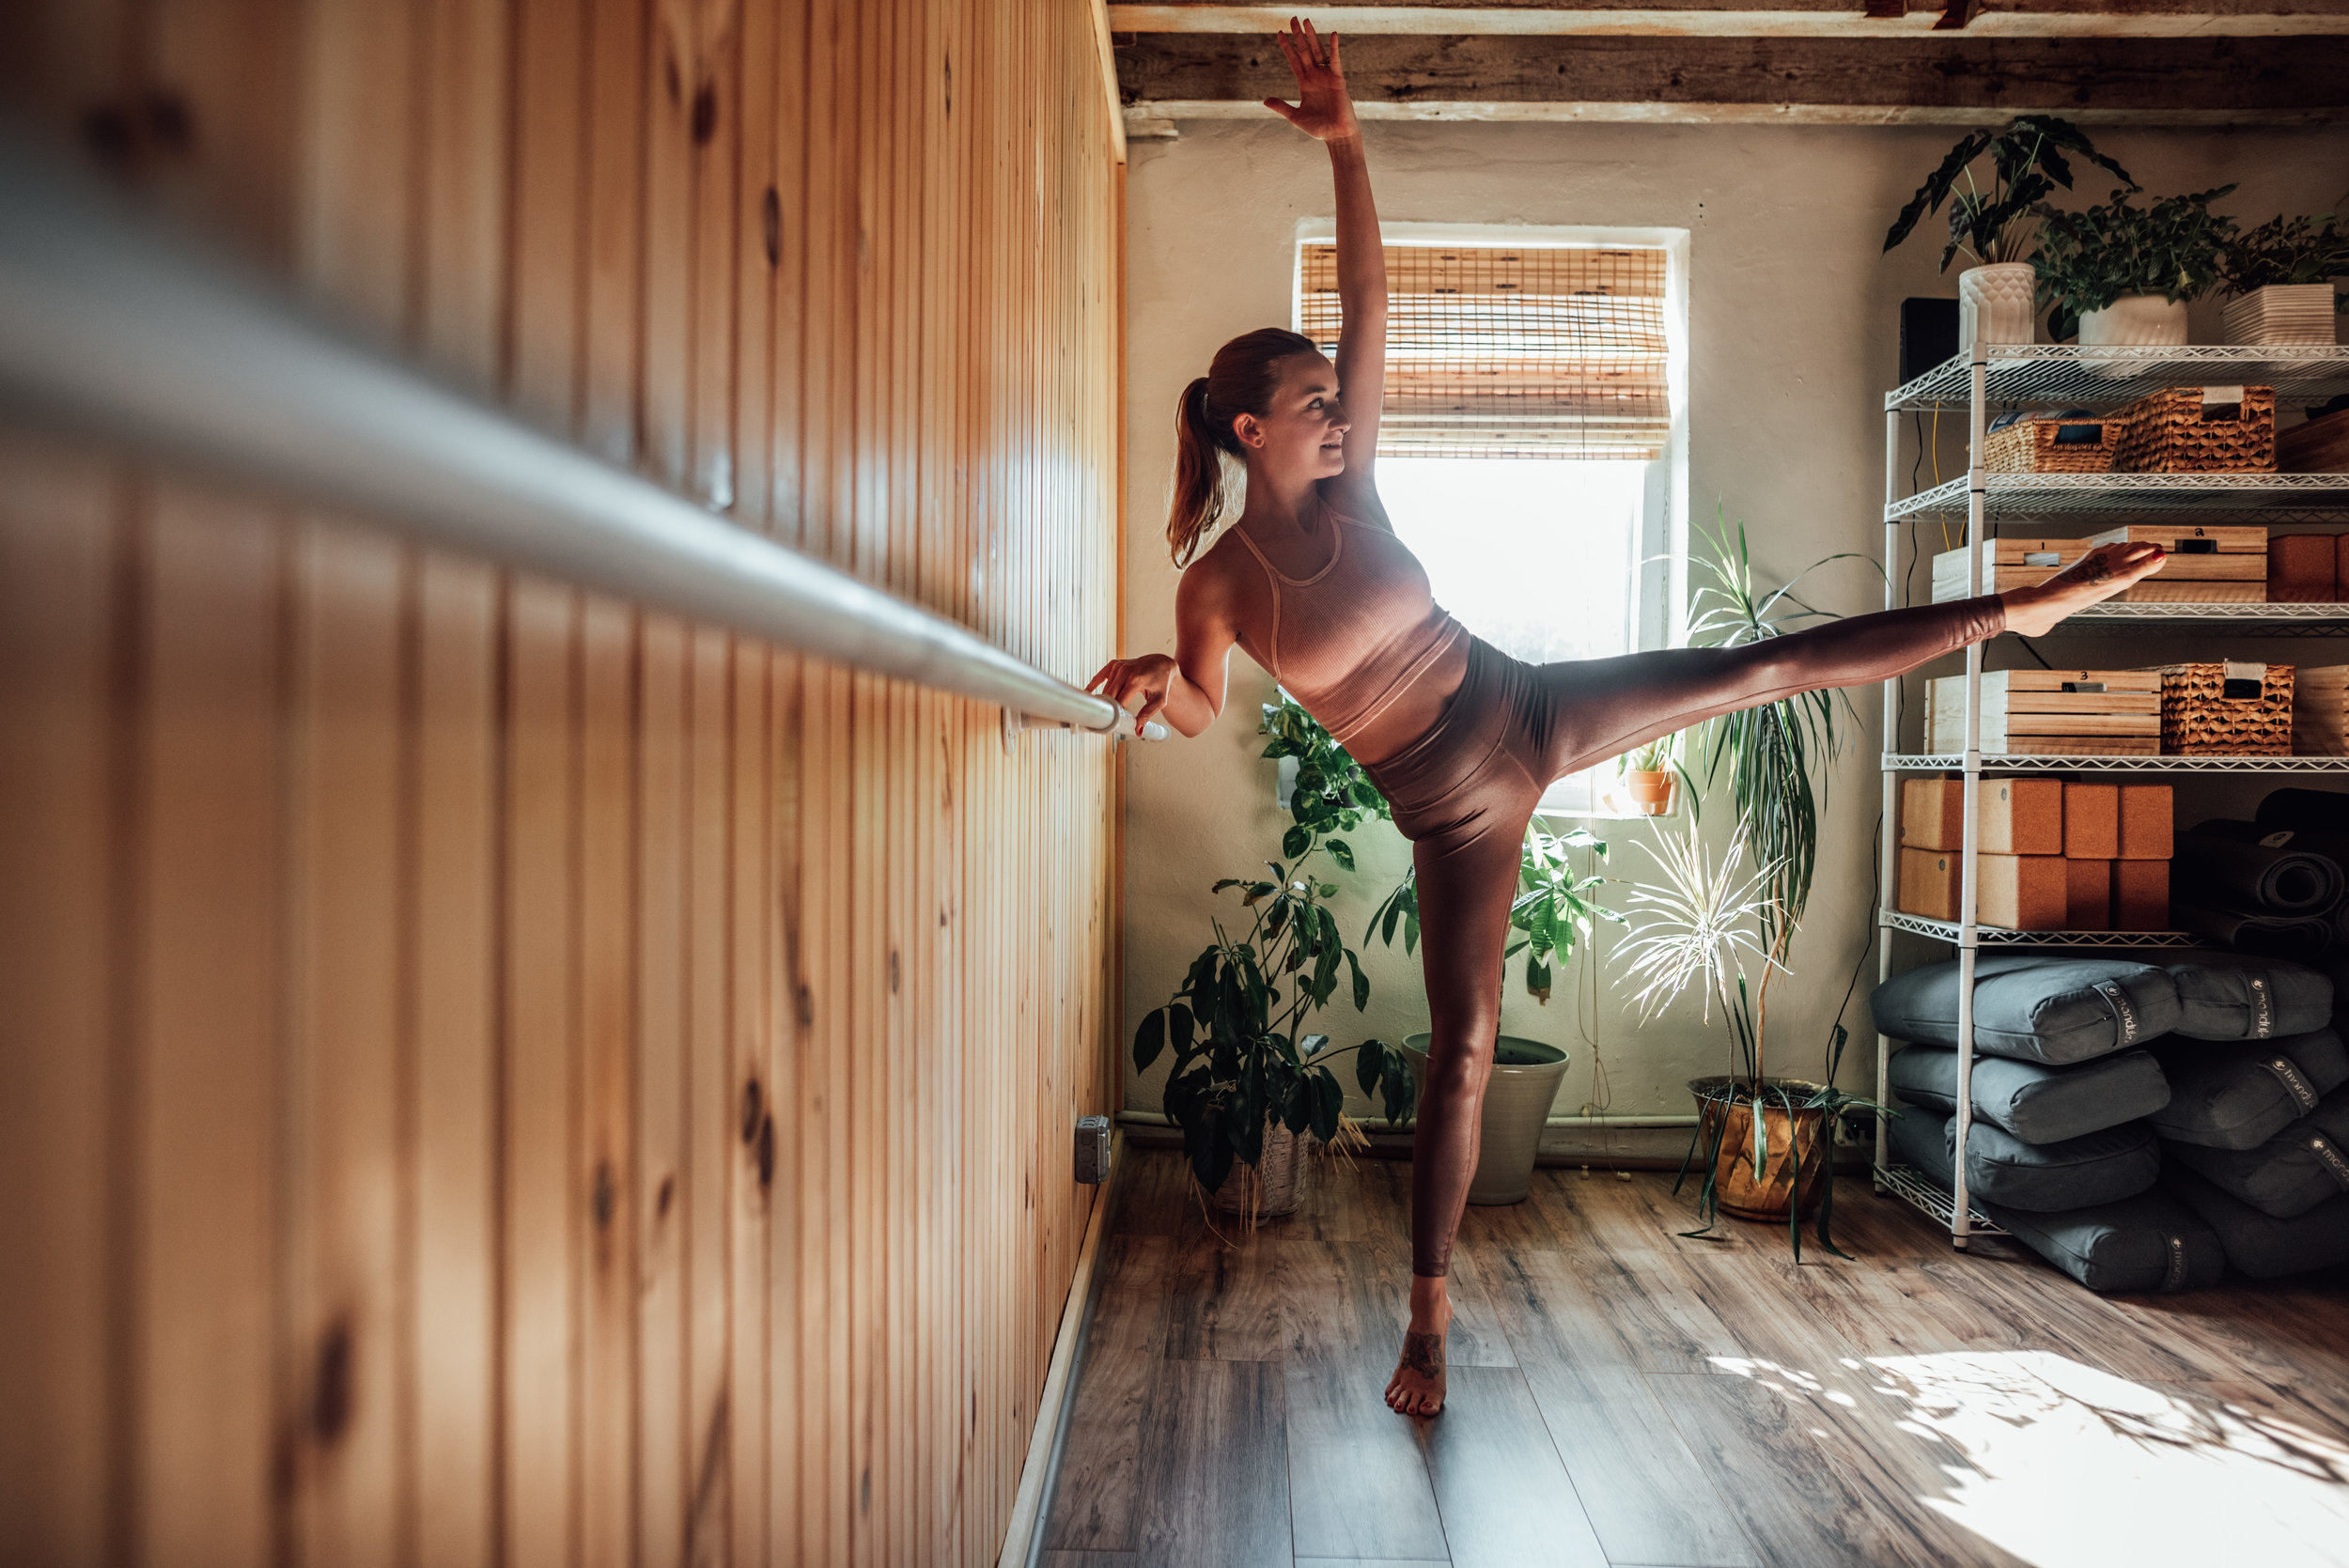 Olivia Diehl Reed - Olivia believes in the importance of tuning into the body and mind on the mat so that we may better understand ourselves off the mat and navigate through our lives mindfully. In this way, yoga becomes a tool for transformation. With breath, alignment, and body awareness, we can overcome hurdles with balance of effort and ease. Certified in The Movement Concept Barre and a RYT-200. Olivia hopes to inspire you to meet yourself, your body, and your practice right where you exist today. As on the mat, so in life.